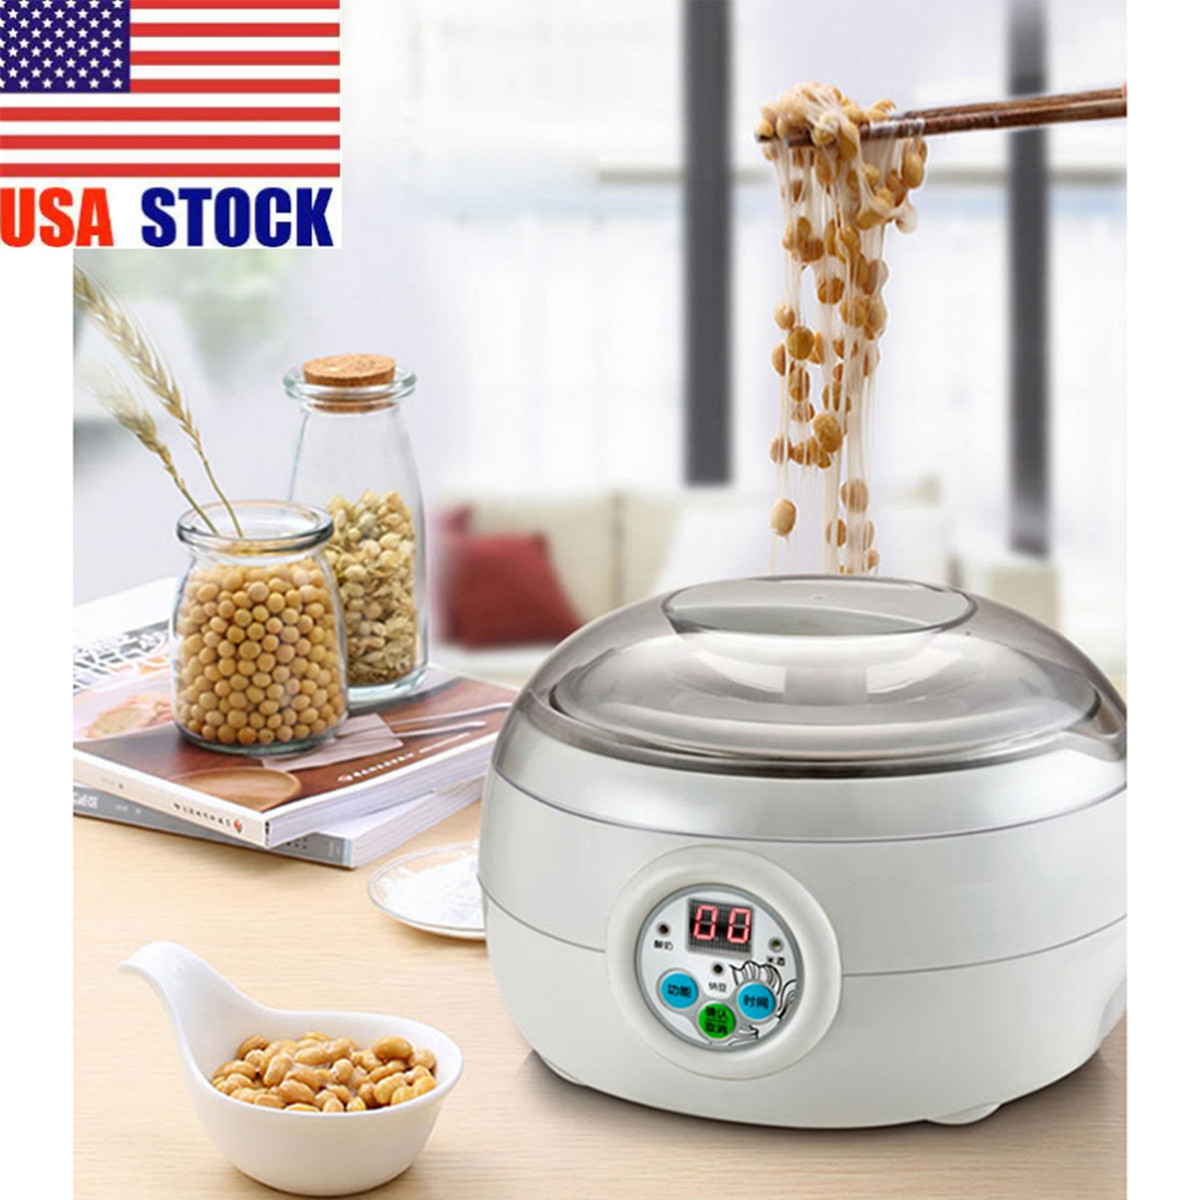 14x21cm:  1.5L 220V 15W White Electric Automatic Yoghurt Maker Rice Wine Natto Cuisine Container Yogurt Maker Kitchen Appliance 14x21cm - Martin's & Co